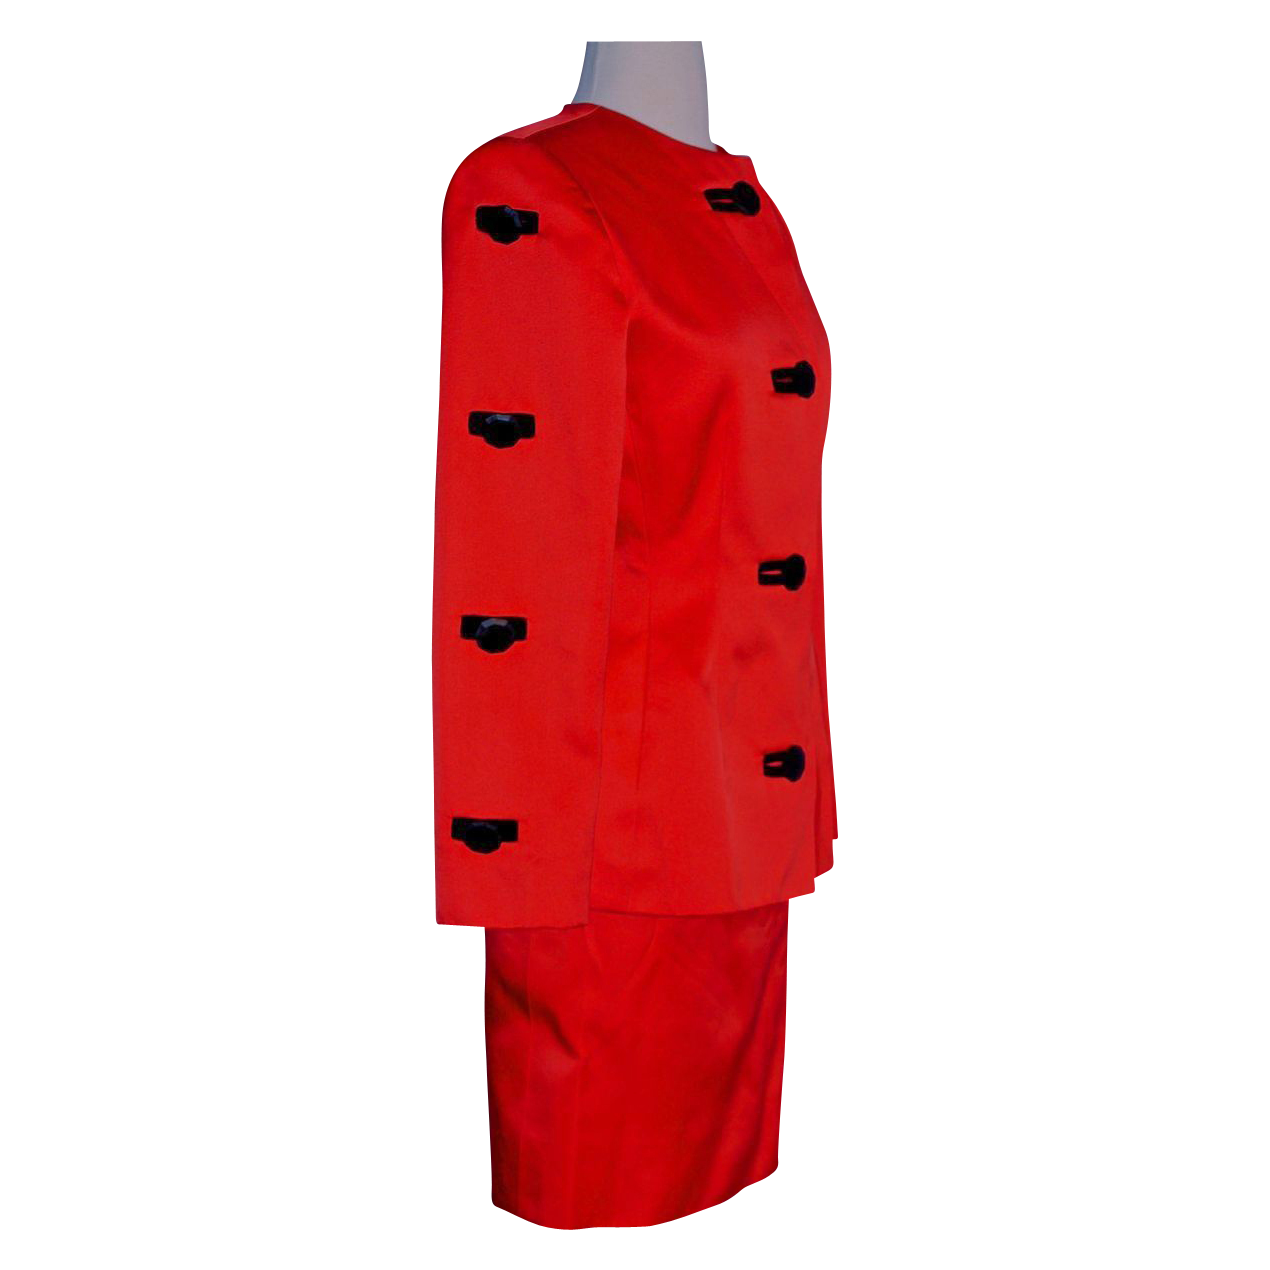 GIVENCHY  Nouvelle Boutique 2-Piece Tomato Red Silk-Satin Suit - Black Velvet Trim